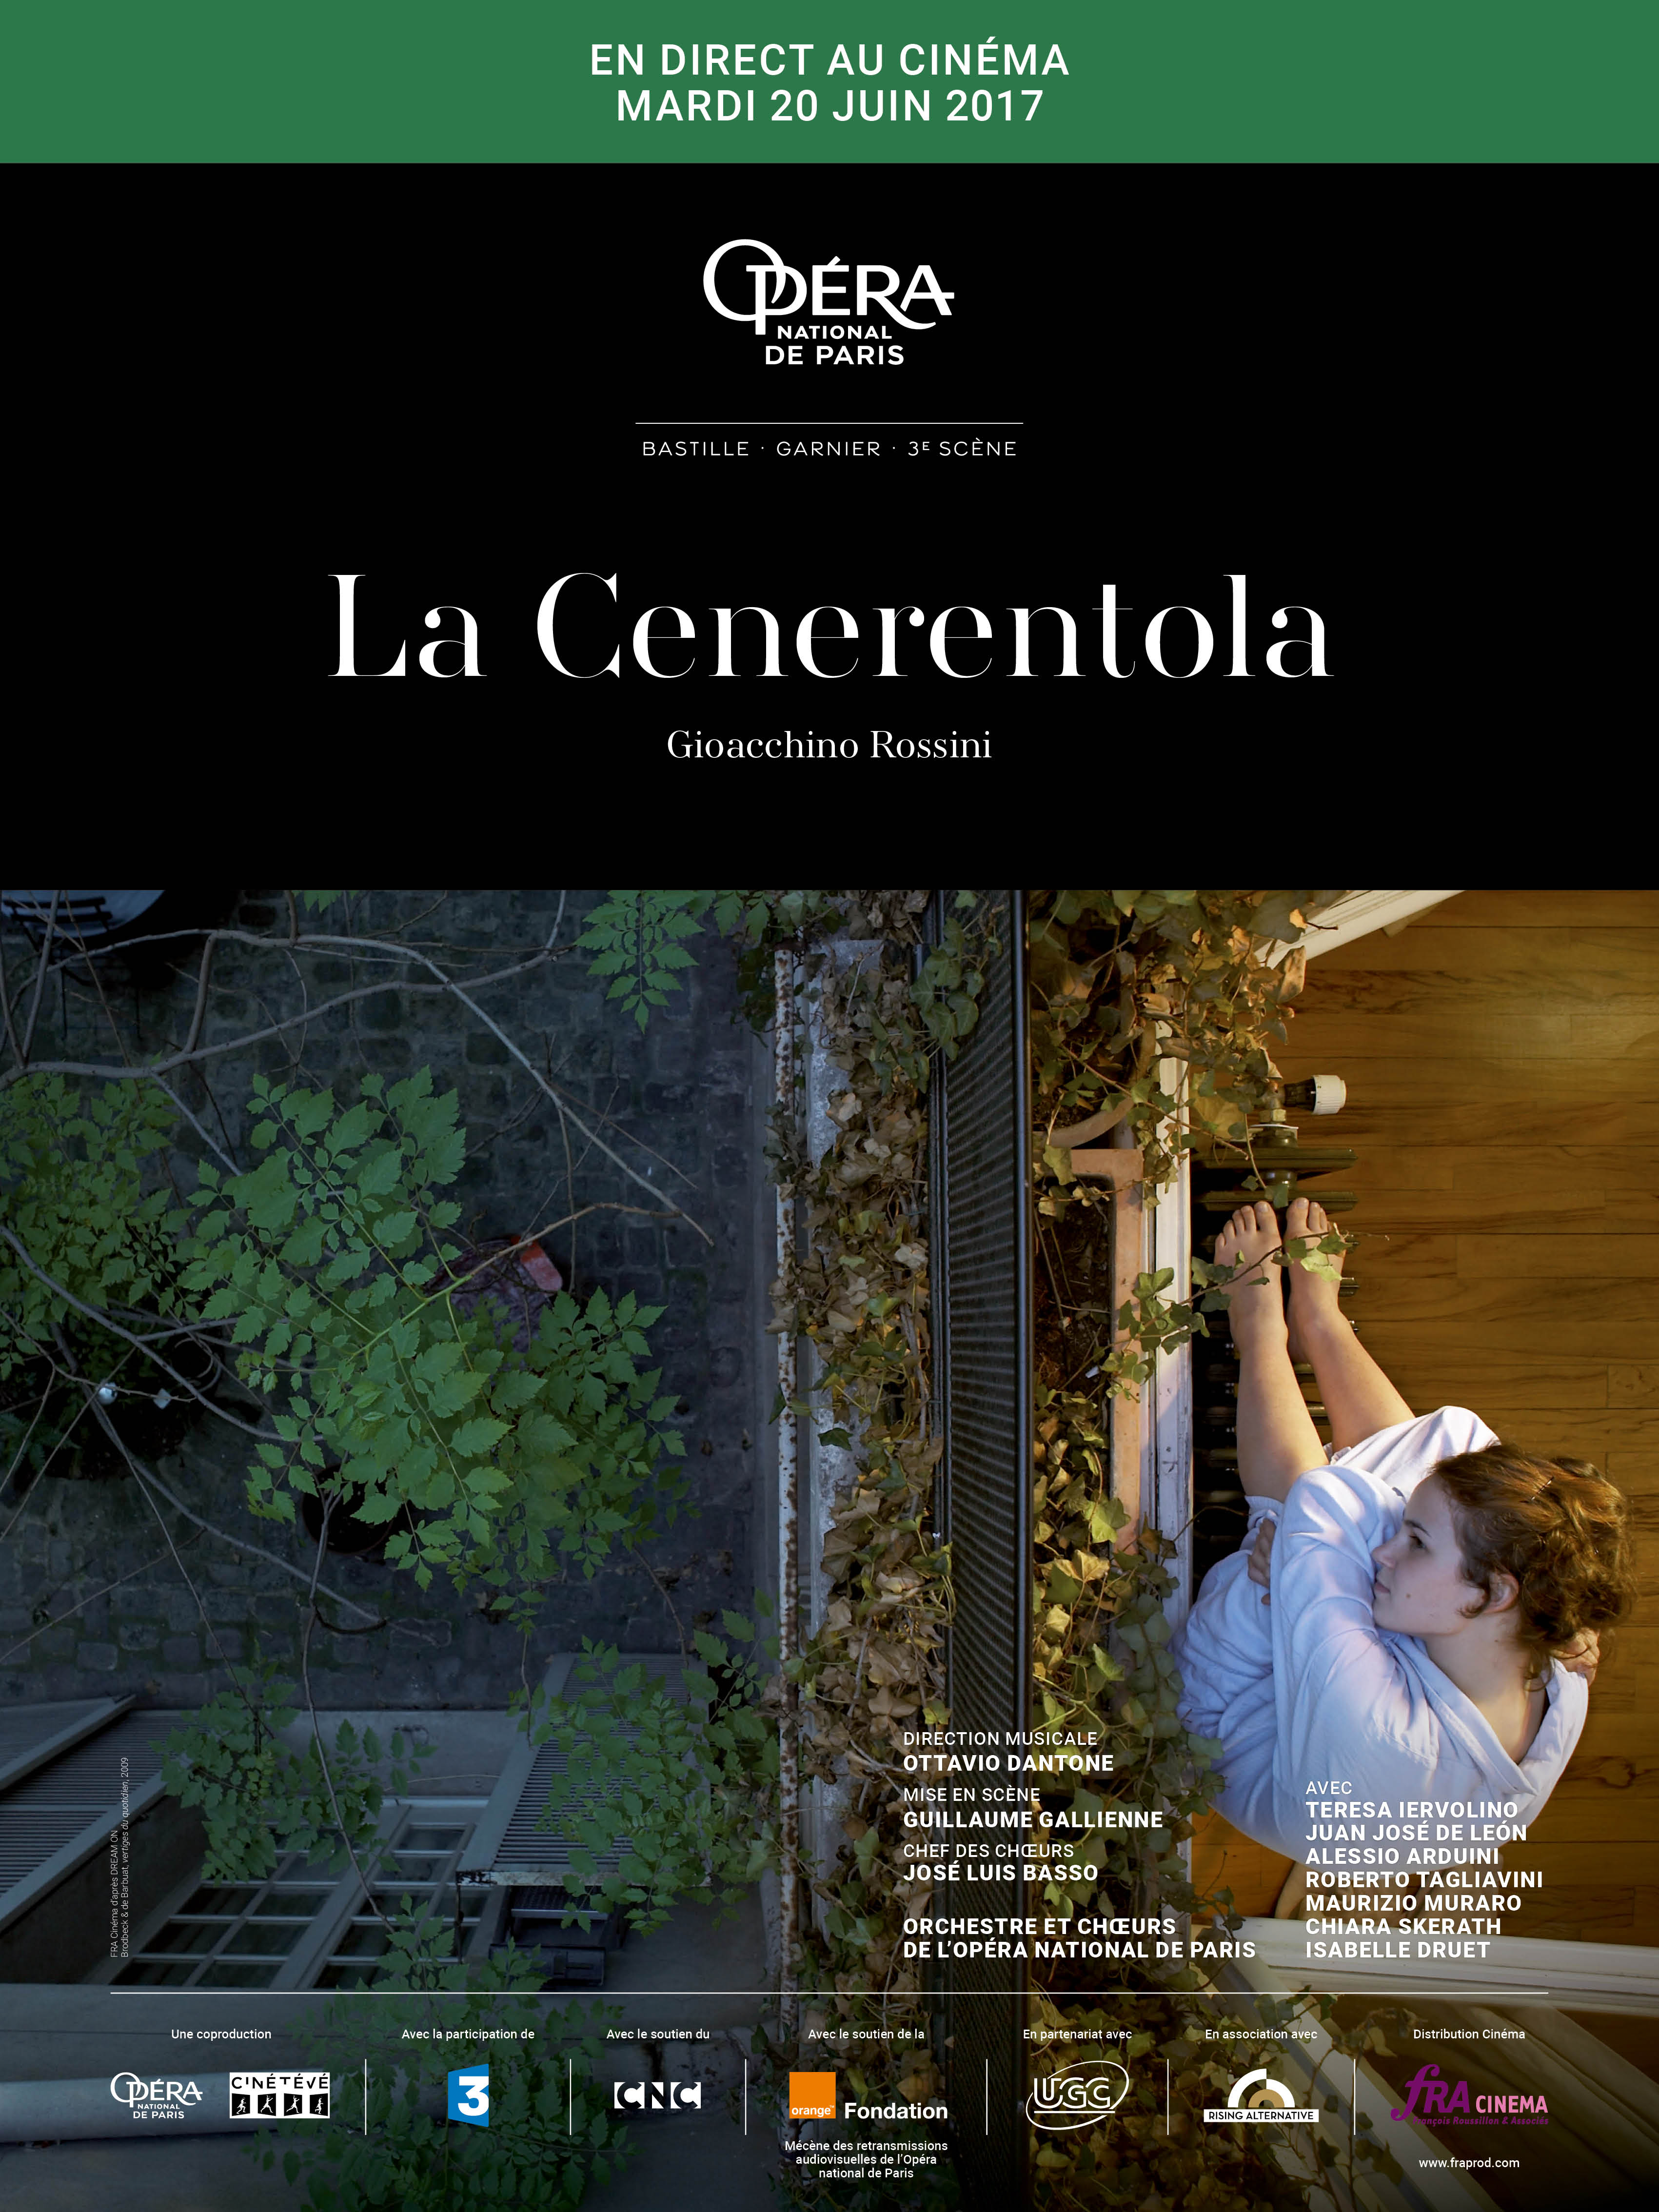 Télécharger La Cenerentola (UGC VIVA L'OPERA-FRA CINEMA) DVDRIP TUREFRENCH Uploaded